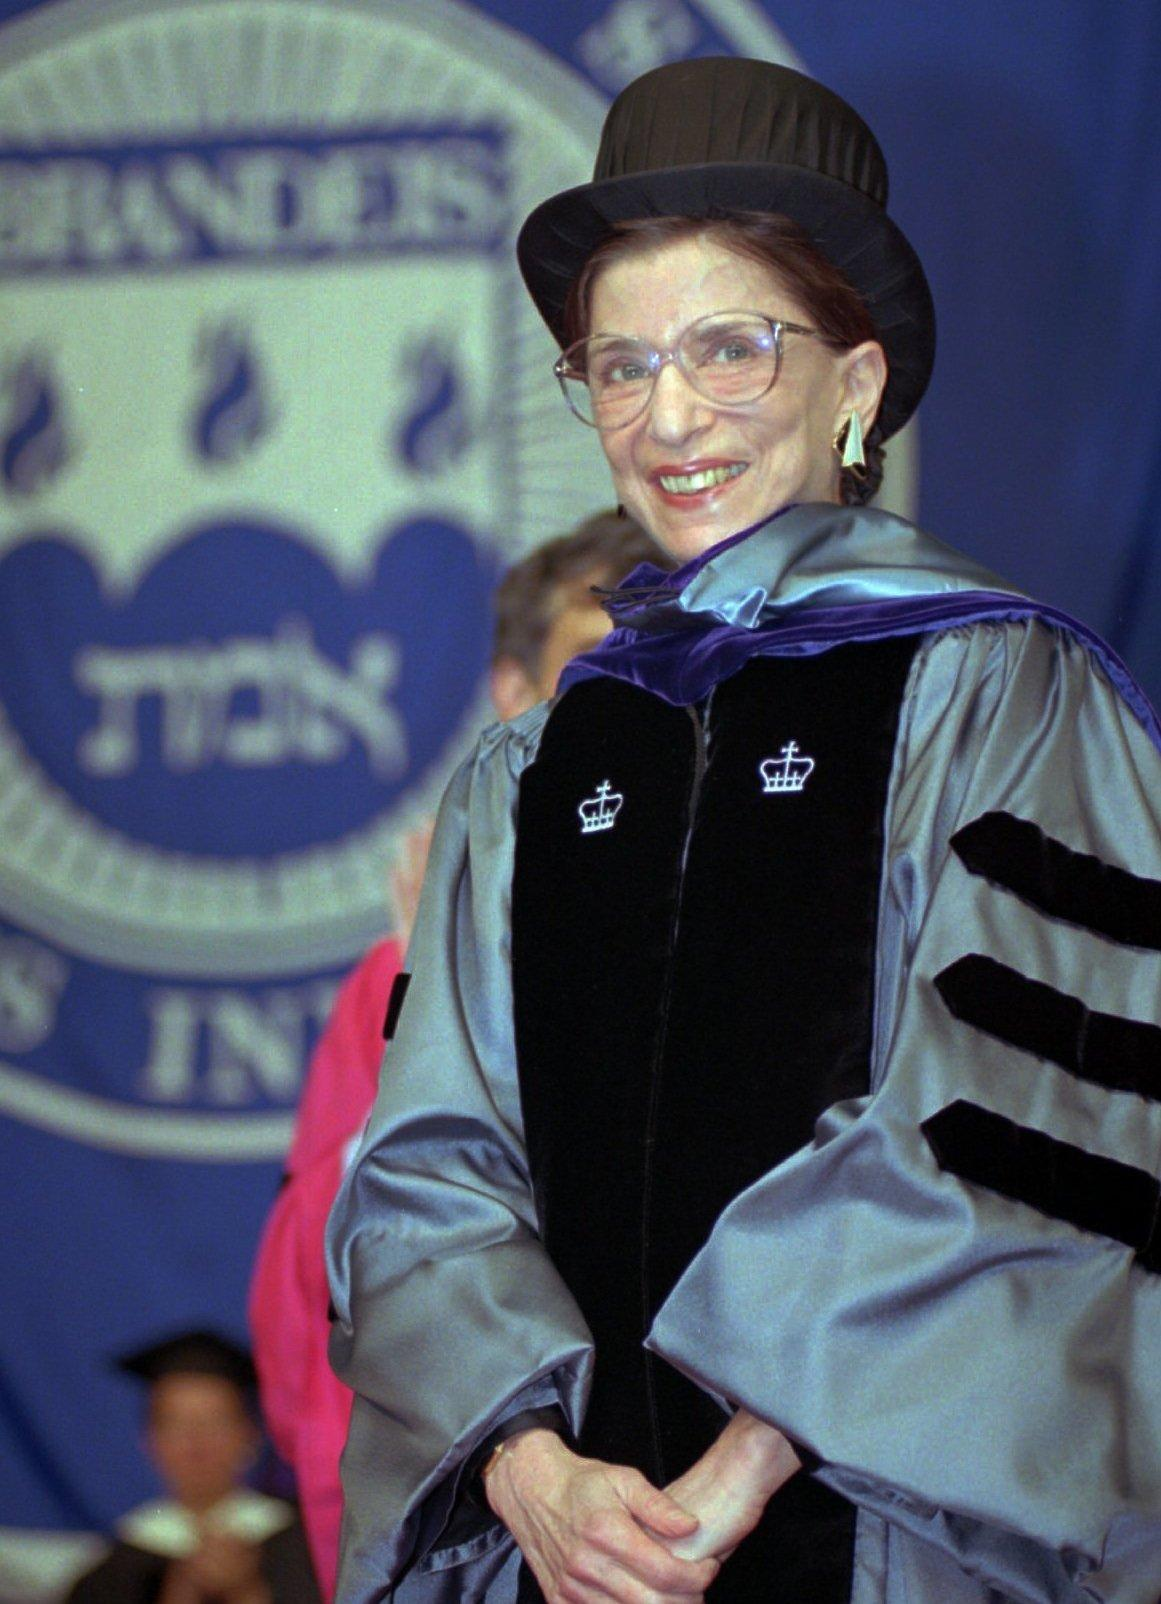 Ginsburg acknowledges applause at the 45th commencement at Brandeis University, where she received an honorary law degree in May 1996.